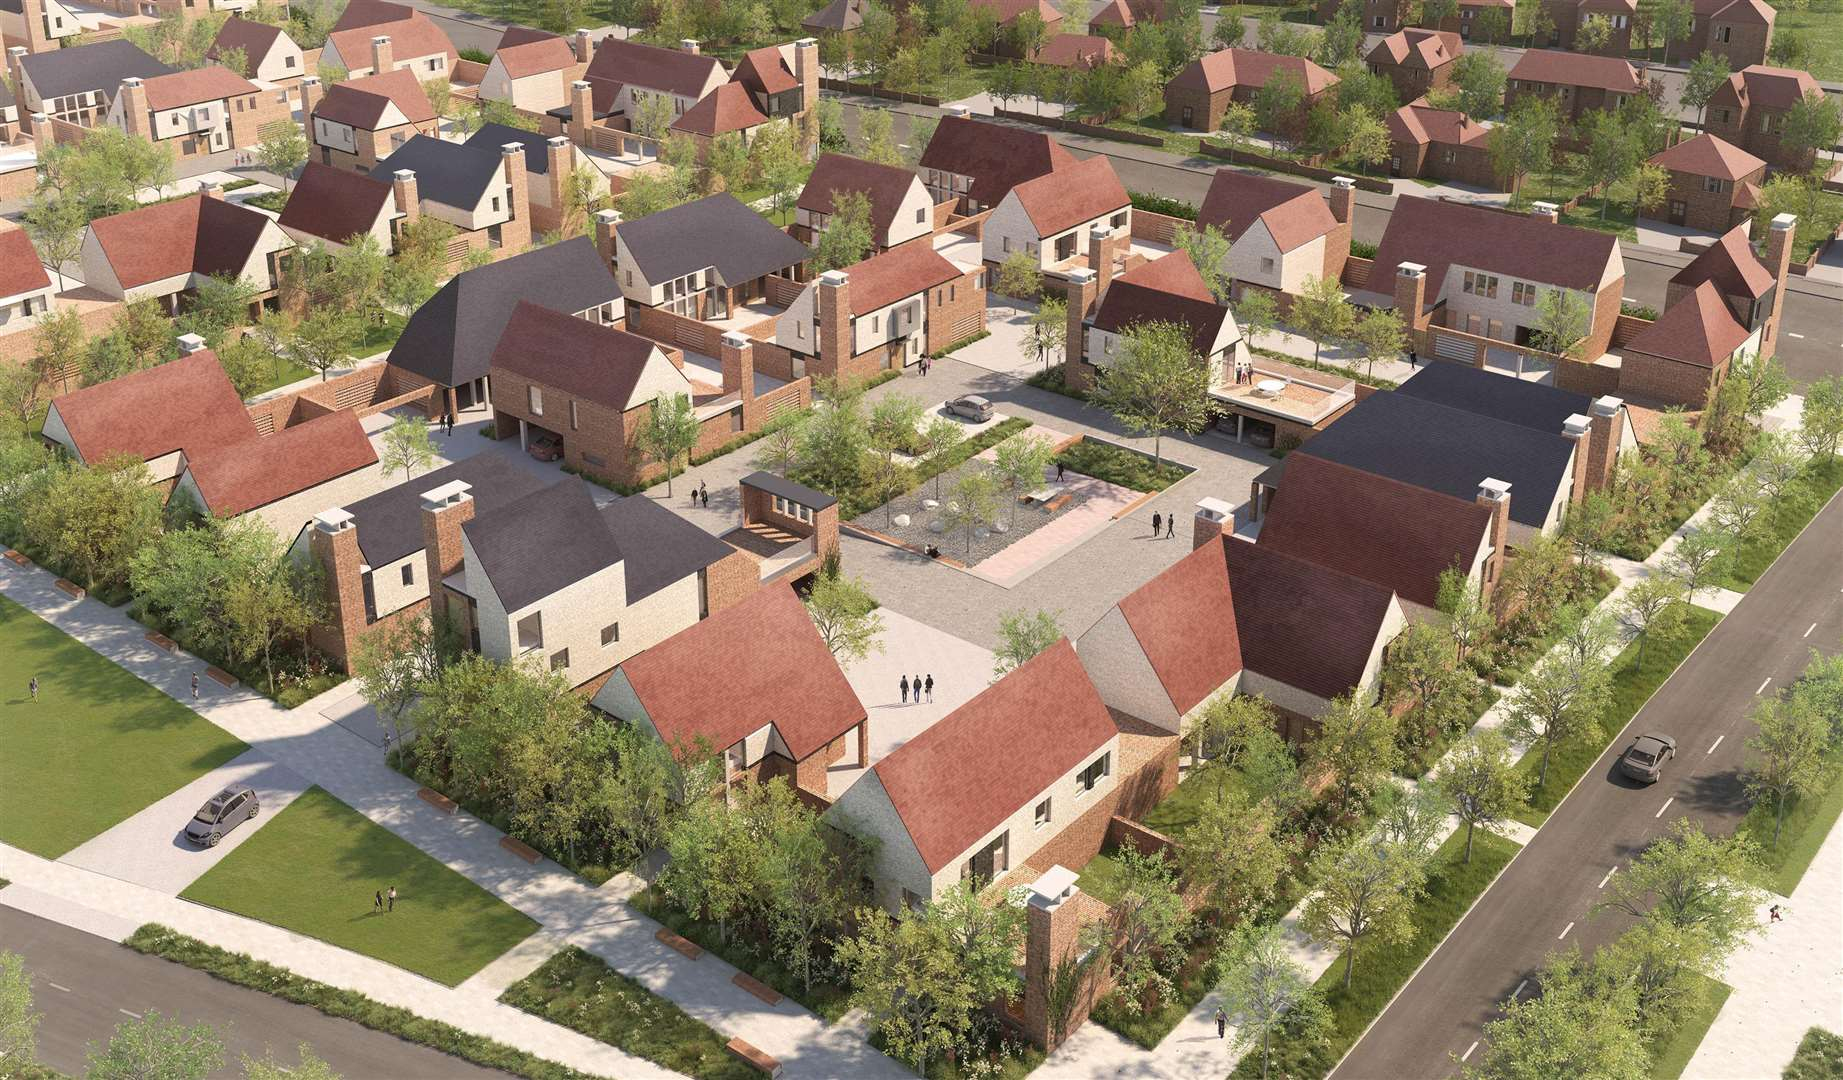 An artist's impression of the planned new homes of Mountfield Park in Canterbury